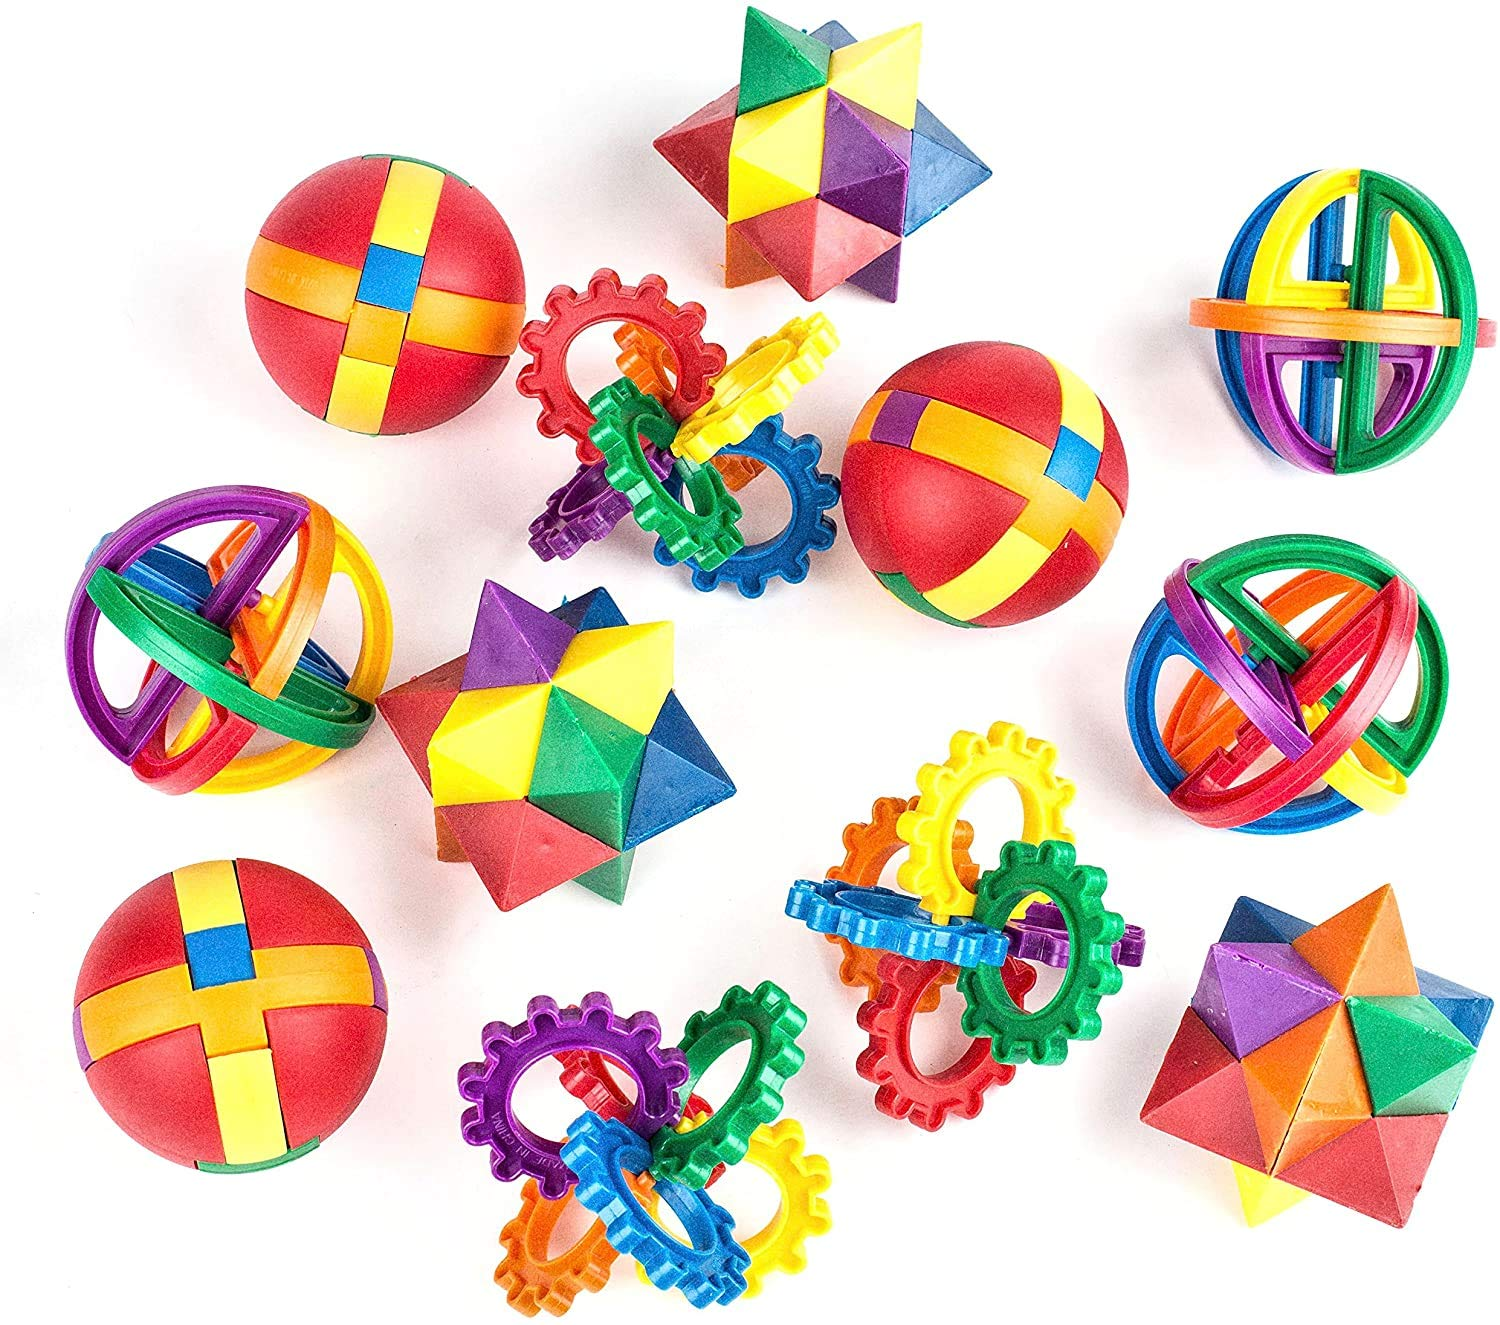 Neliblu Party Favors for Kids - Fun Puzzle Balls - Goody Bag Fillers - Treasure Box Prizes for Classroom, Carnival Prizes, Fidget Brain Teaser Puzzles (12 Pack) Clear Instructional Videos Included!